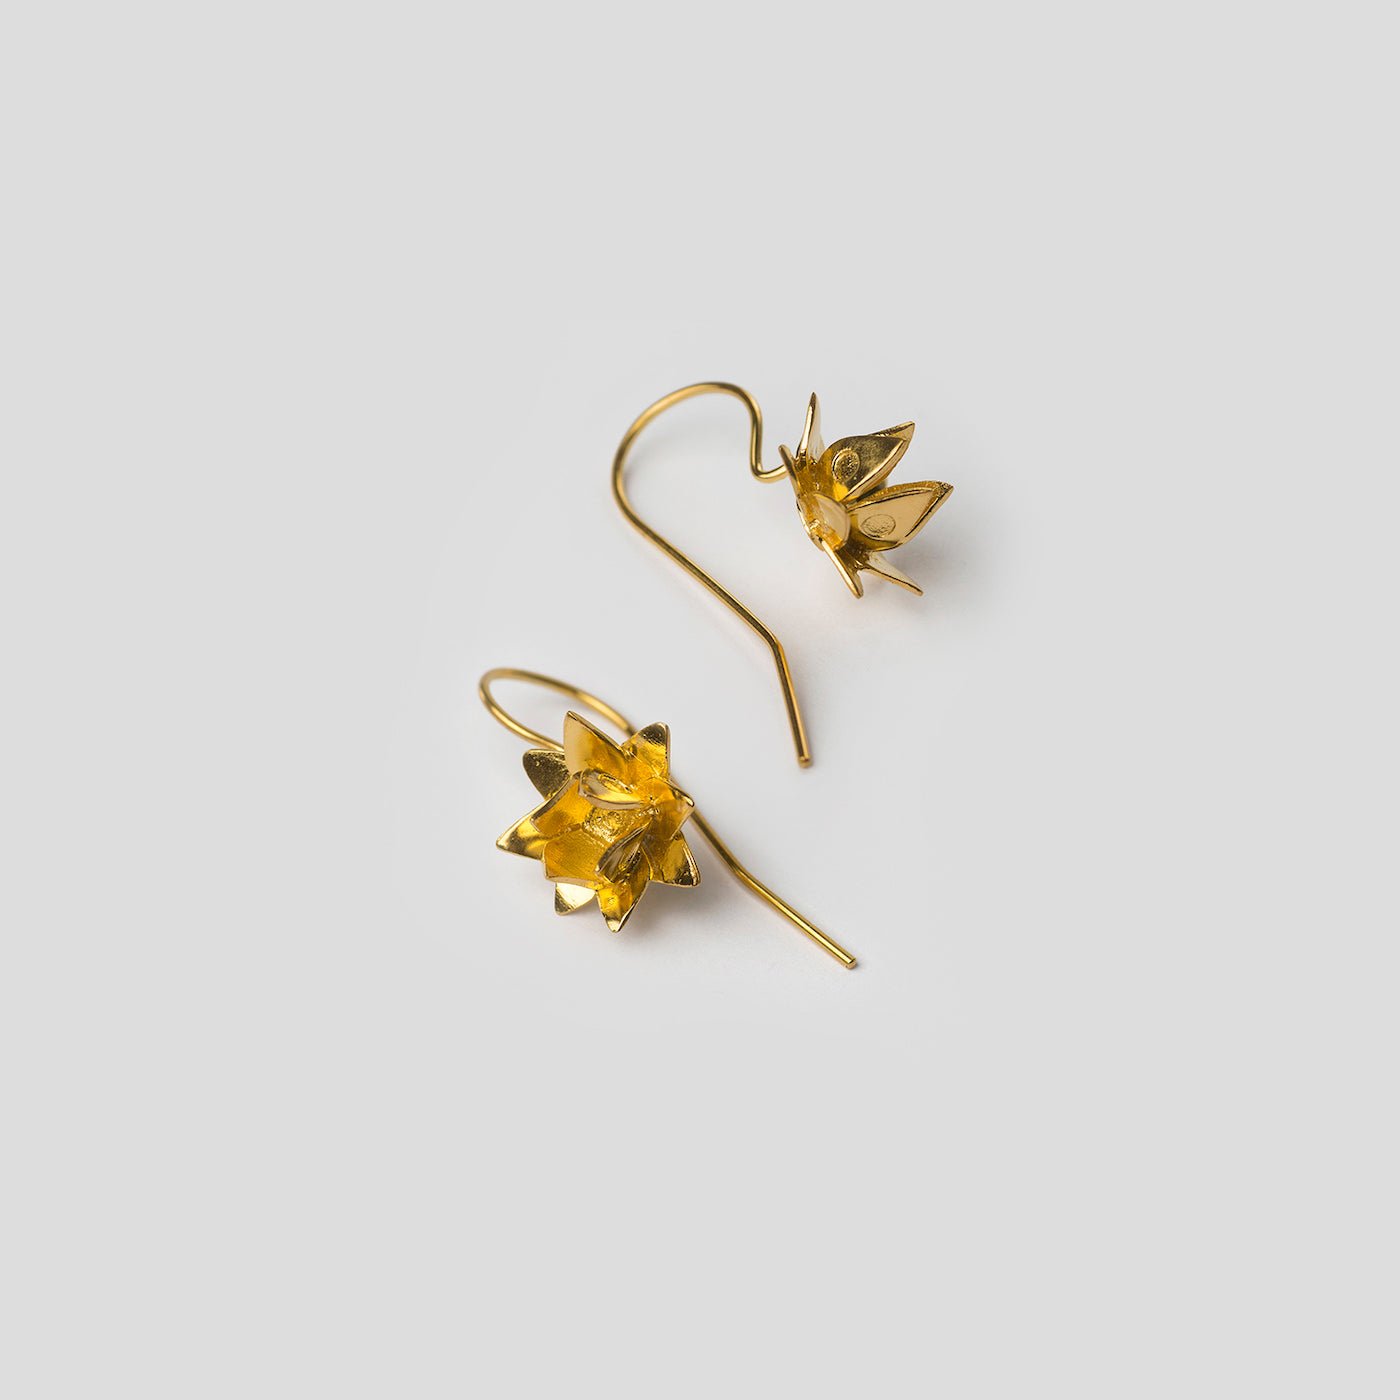 gold lotus hook earrings on white background